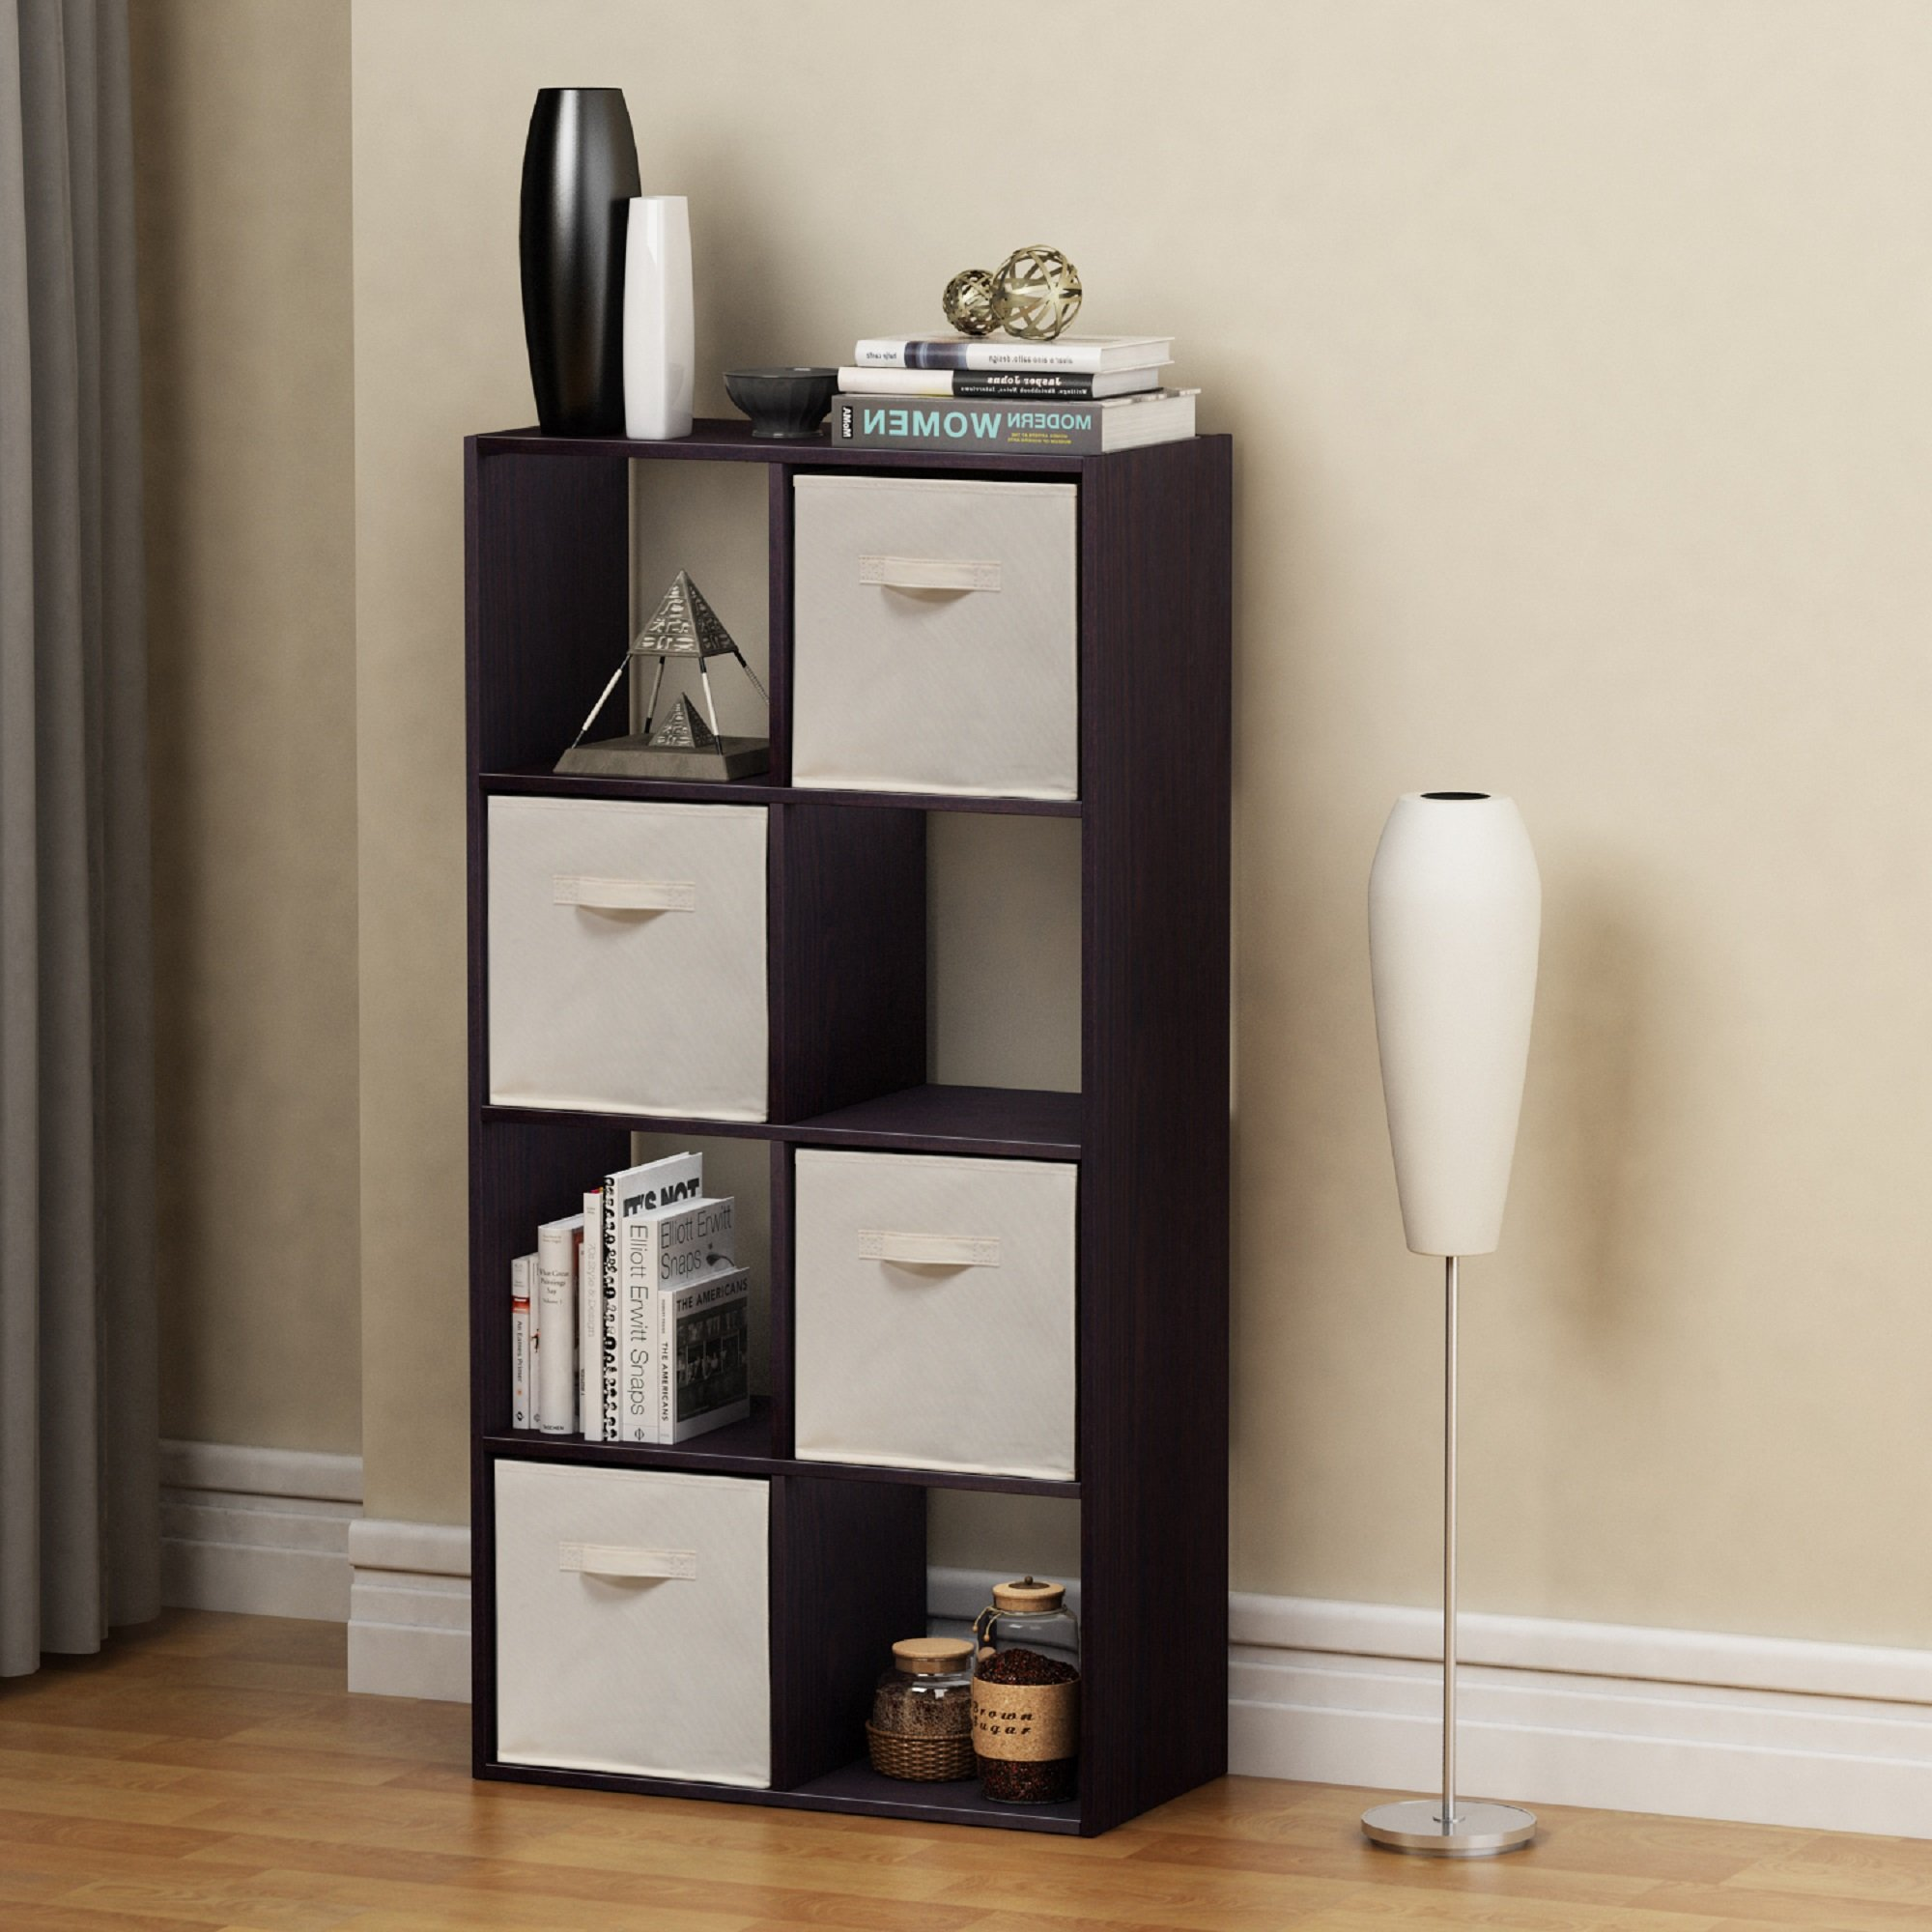 Homestar 8 Cube with Fabric Bins, Black Brown